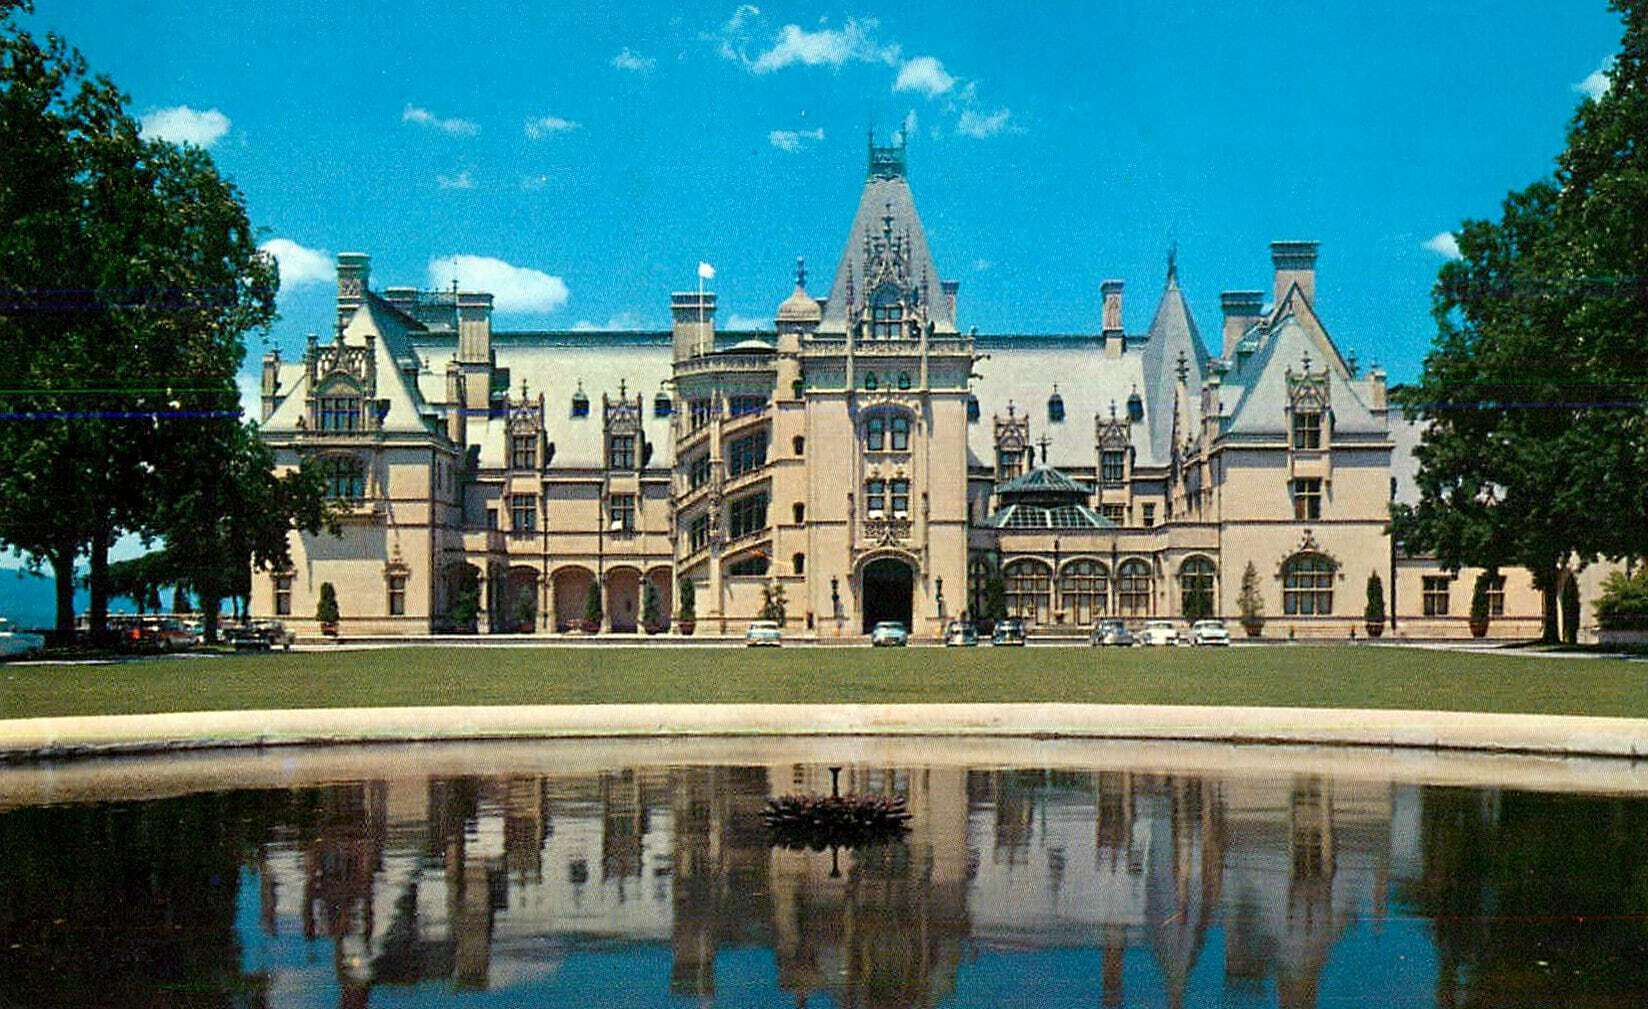 Ashevilles biltmore mansion a century of american opulence